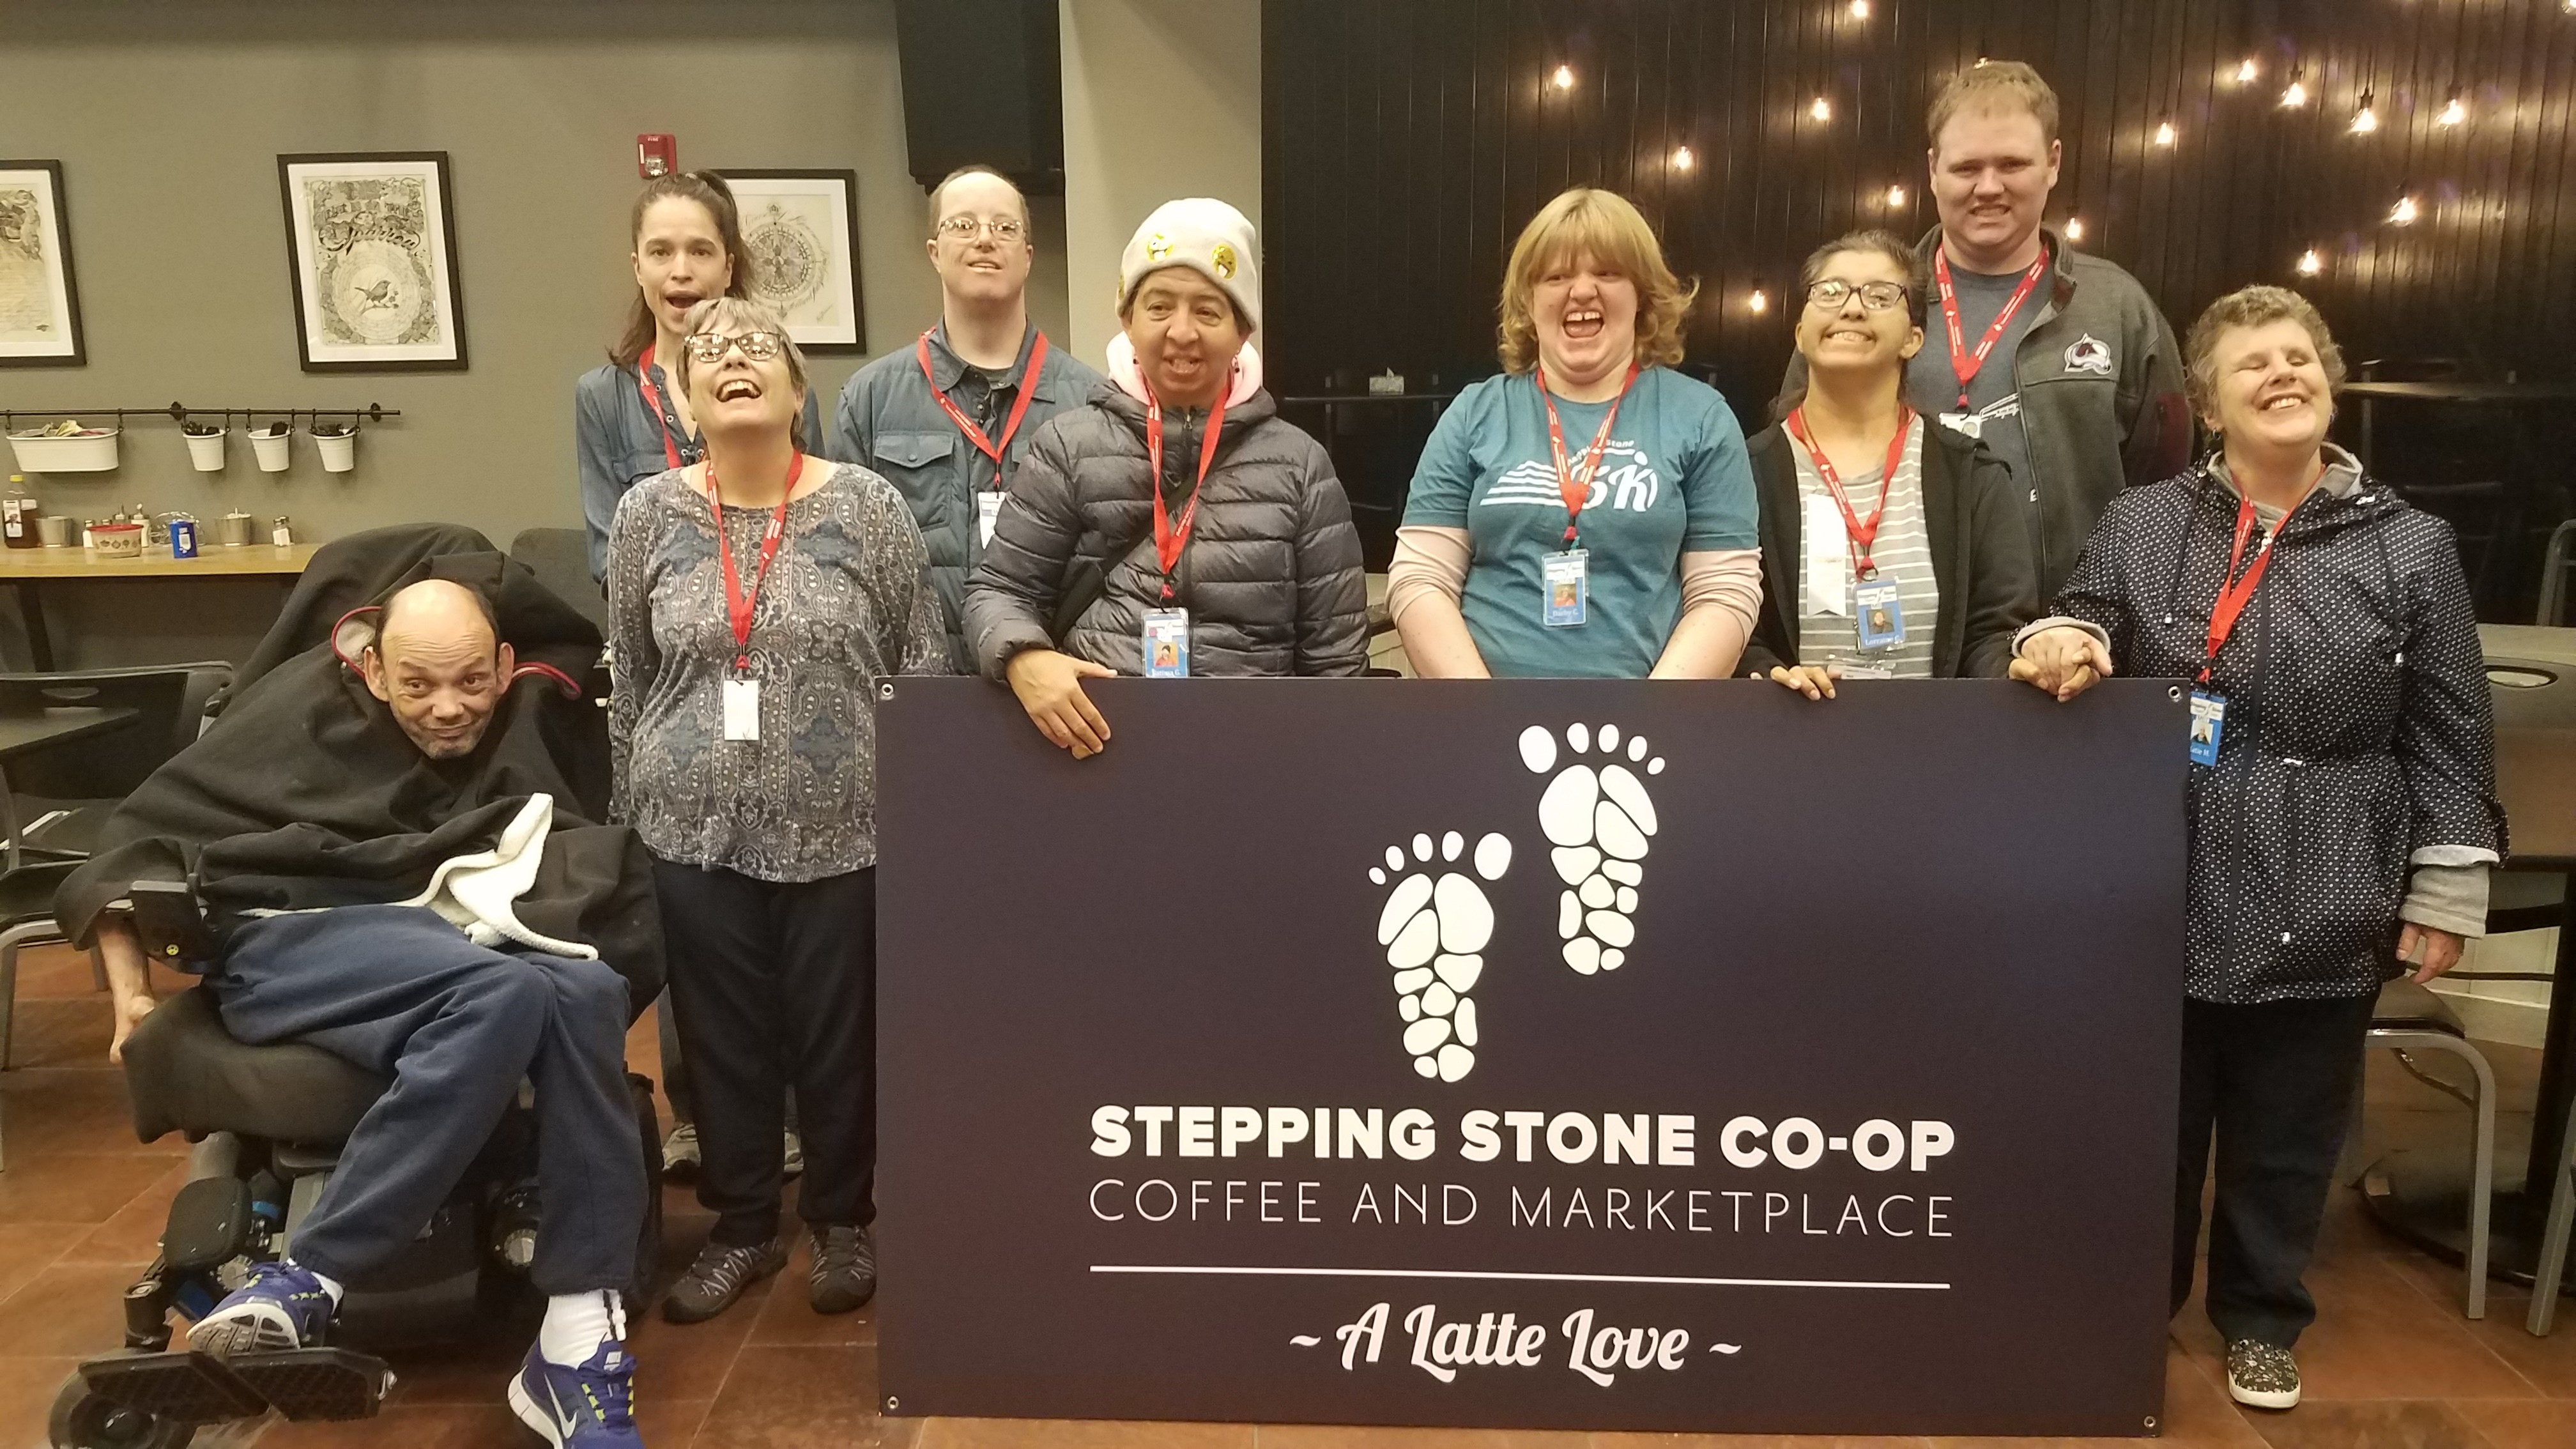 Stepping Stone Co-op Coffee and Marketplace